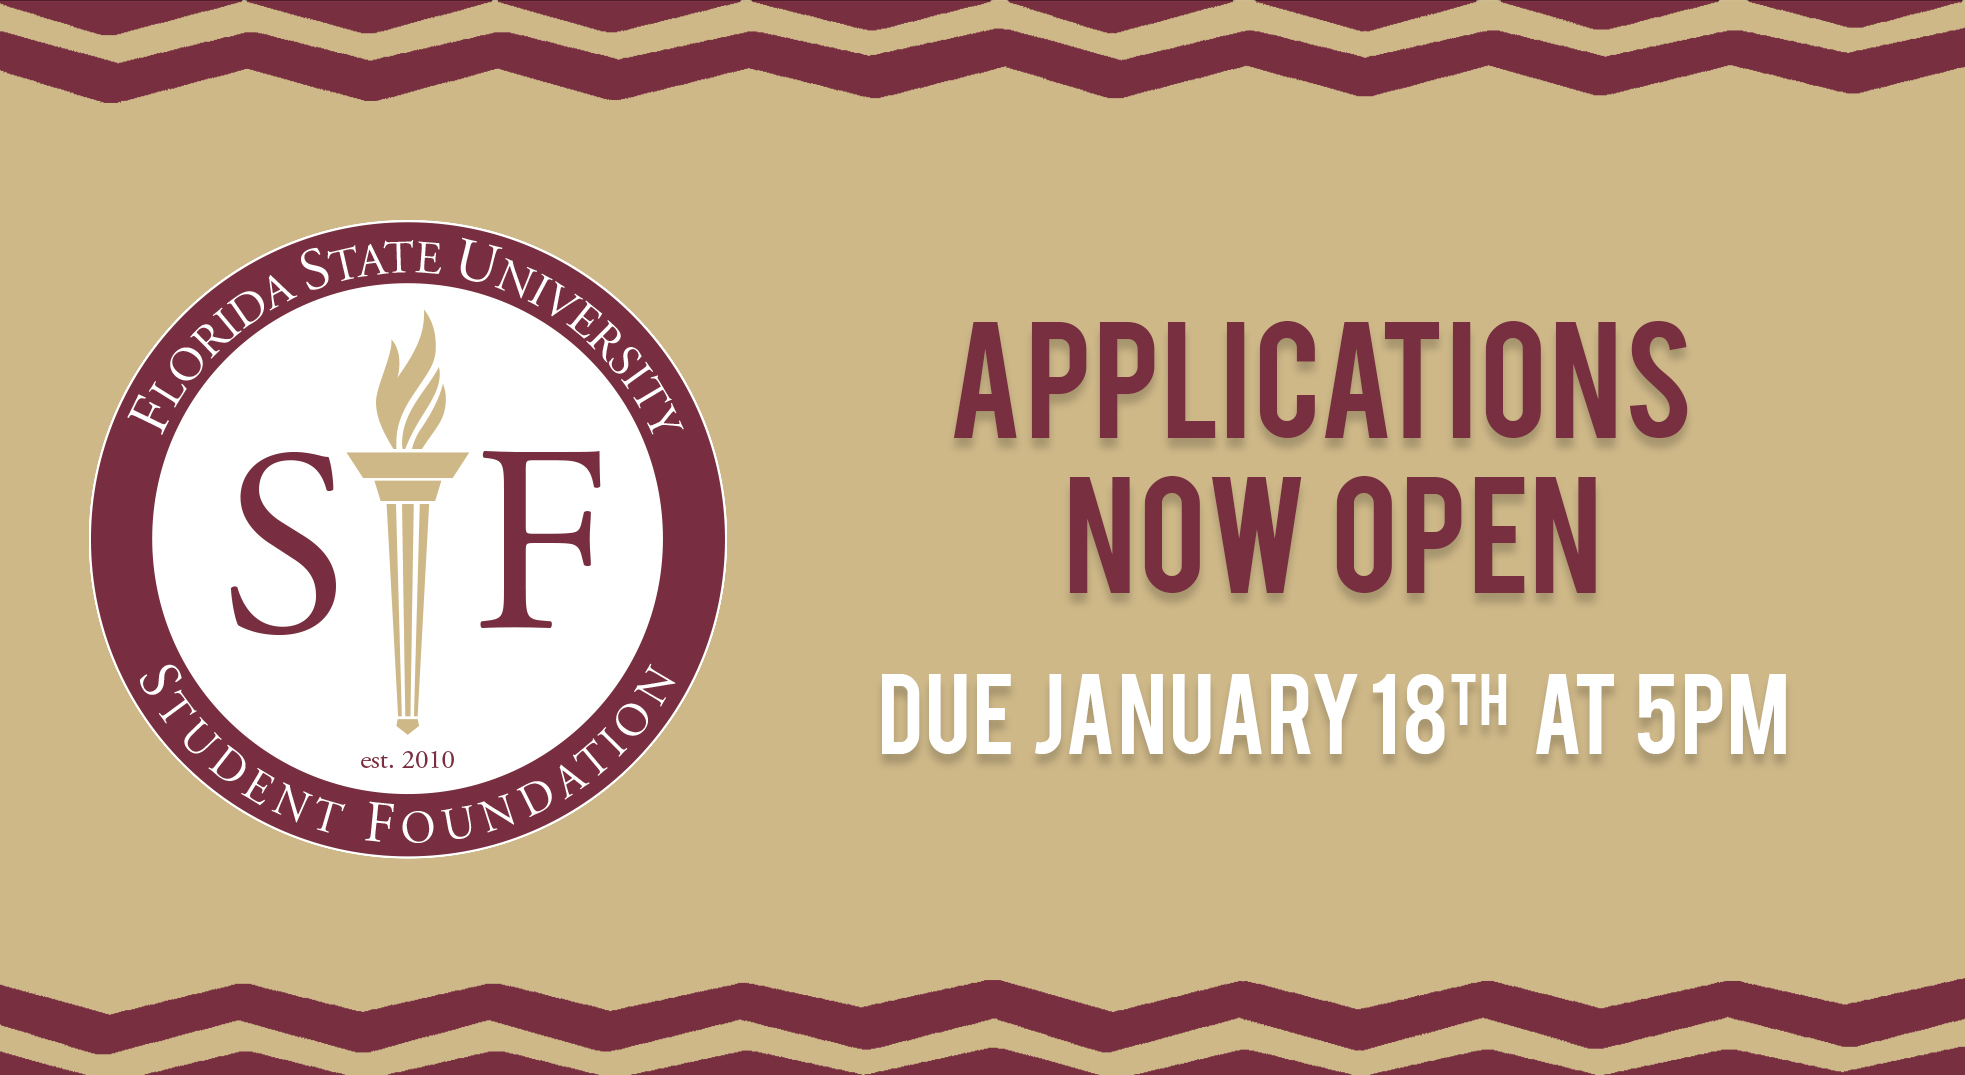 applications_open_studentfoundation